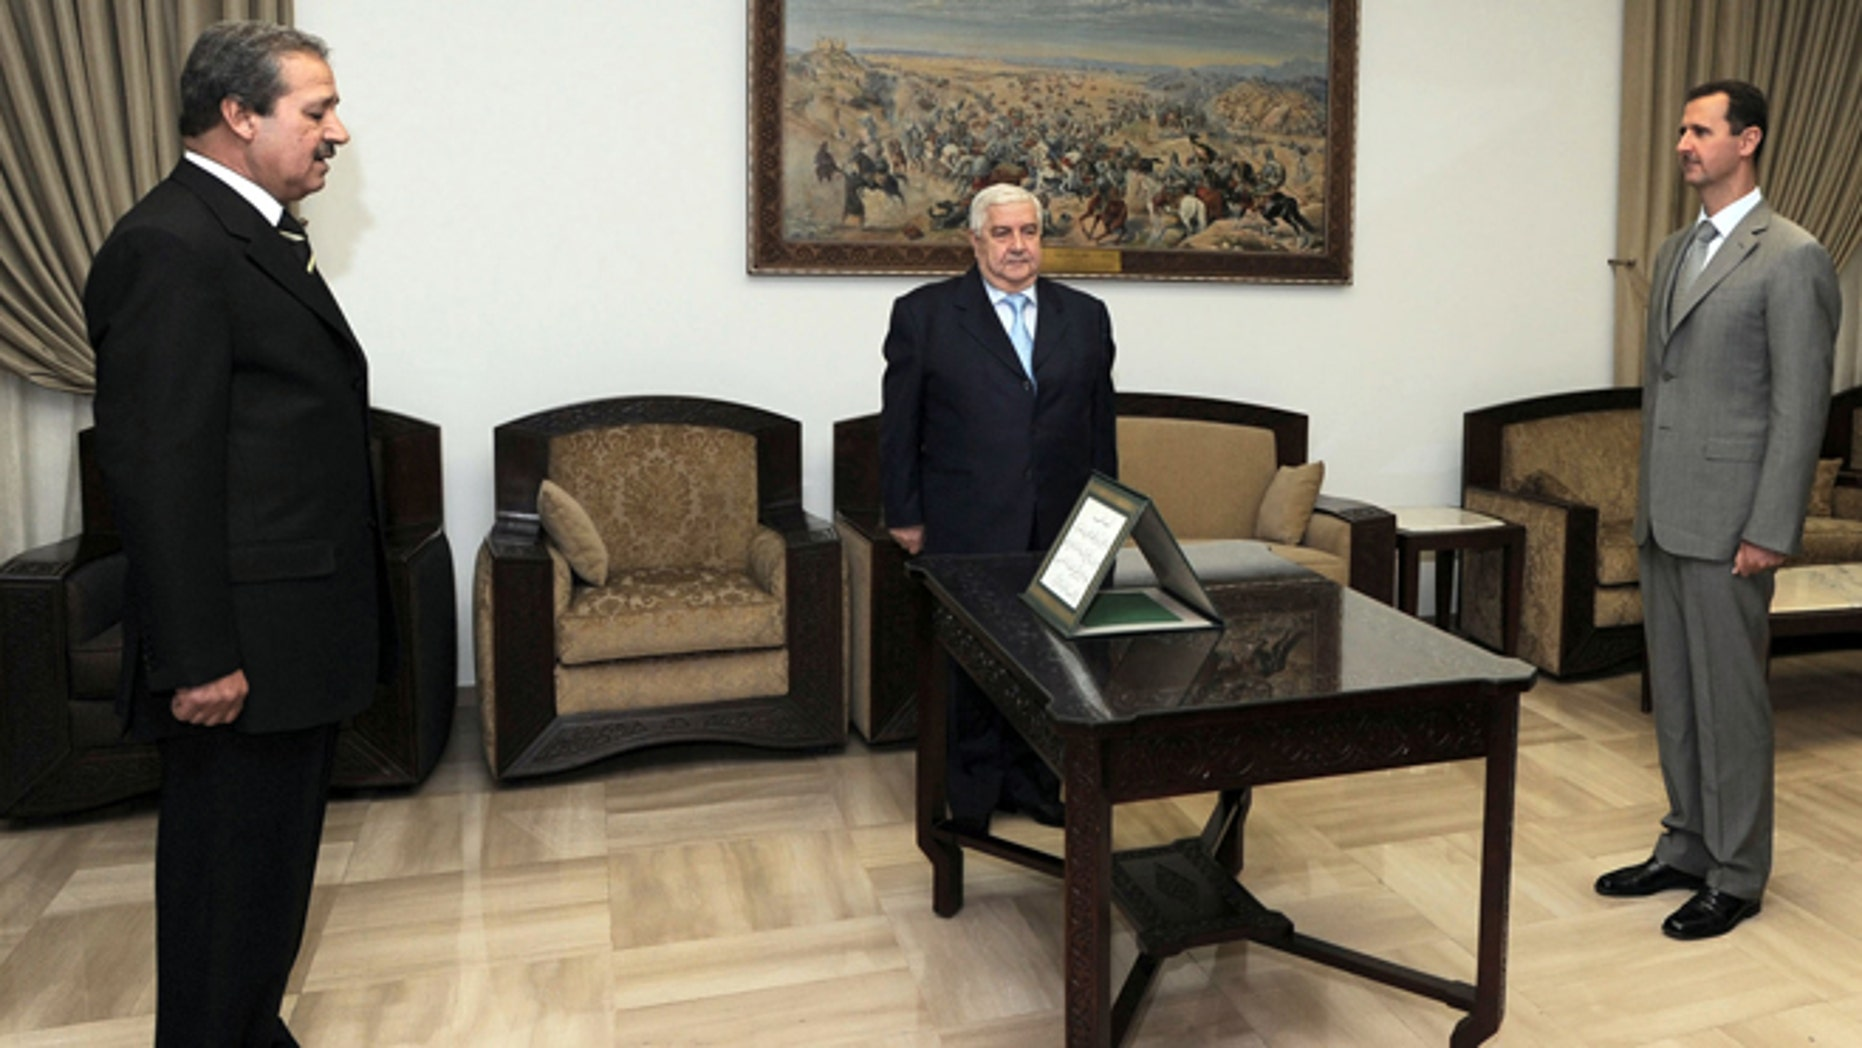 FILE - In this Sept. 16, 2008 file photo provided by the Syrian official news agency SANA, Nawaf  Fares, left, is sworn in as Syria's first ambassador to Iraq in 26 years before Syrian President Bashar Assad, right, and Syrian Foreign Minister Walid Moallem in Damascus.